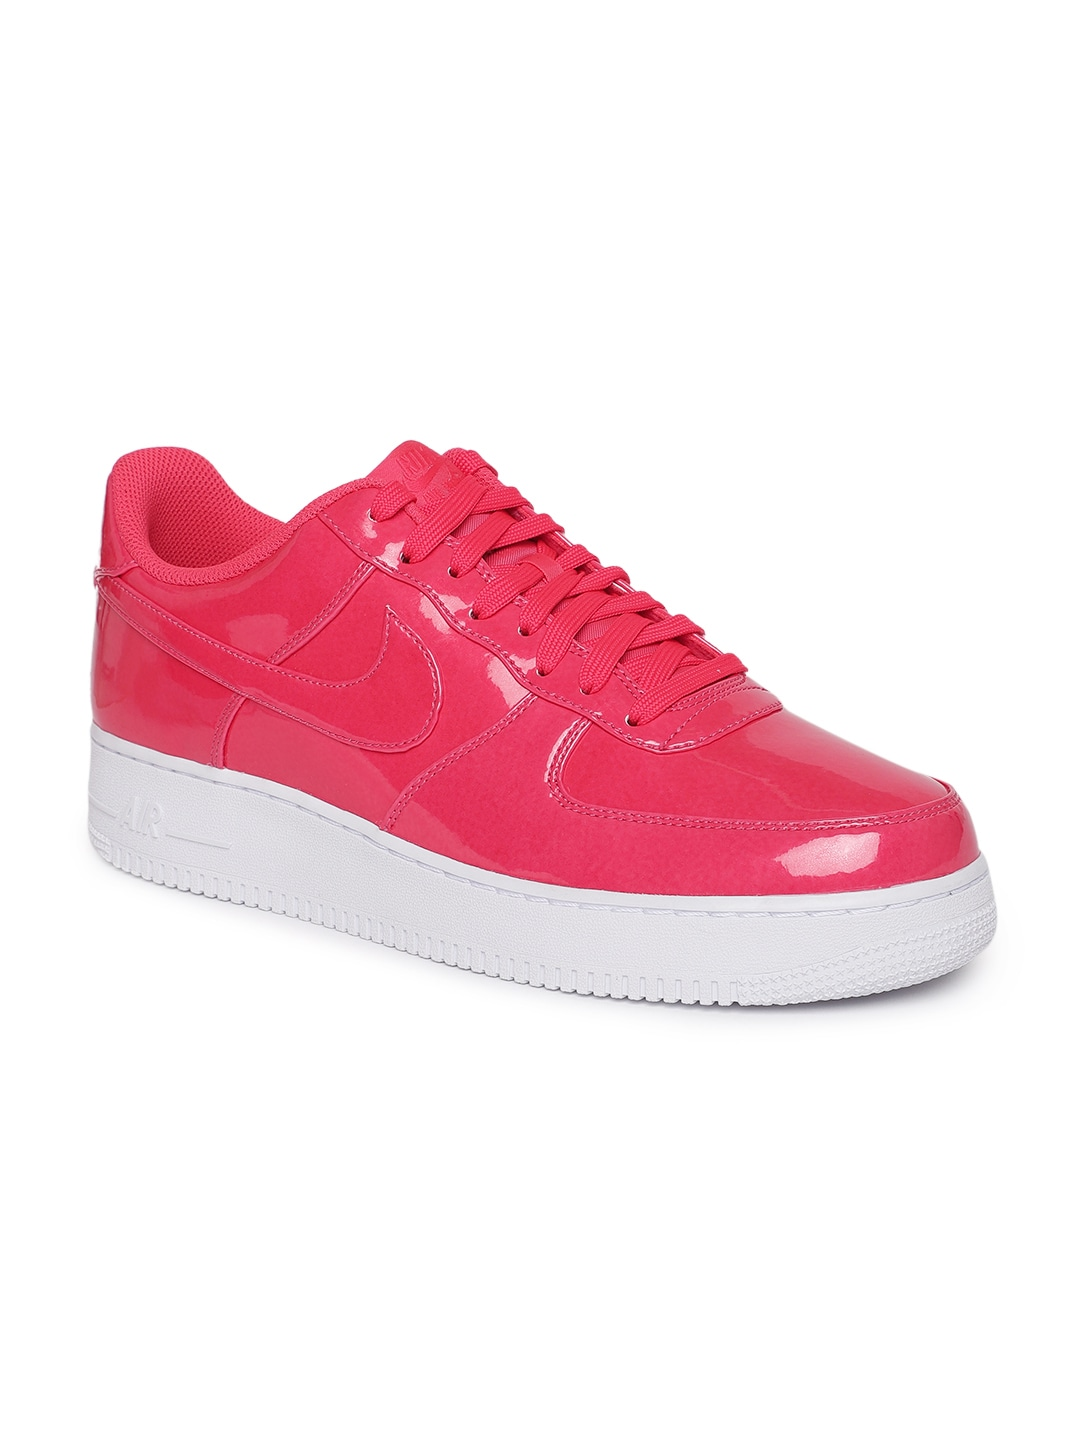 Nike Red Shoes - Buy Nike Red Shoes Online in India 2f26a1c12